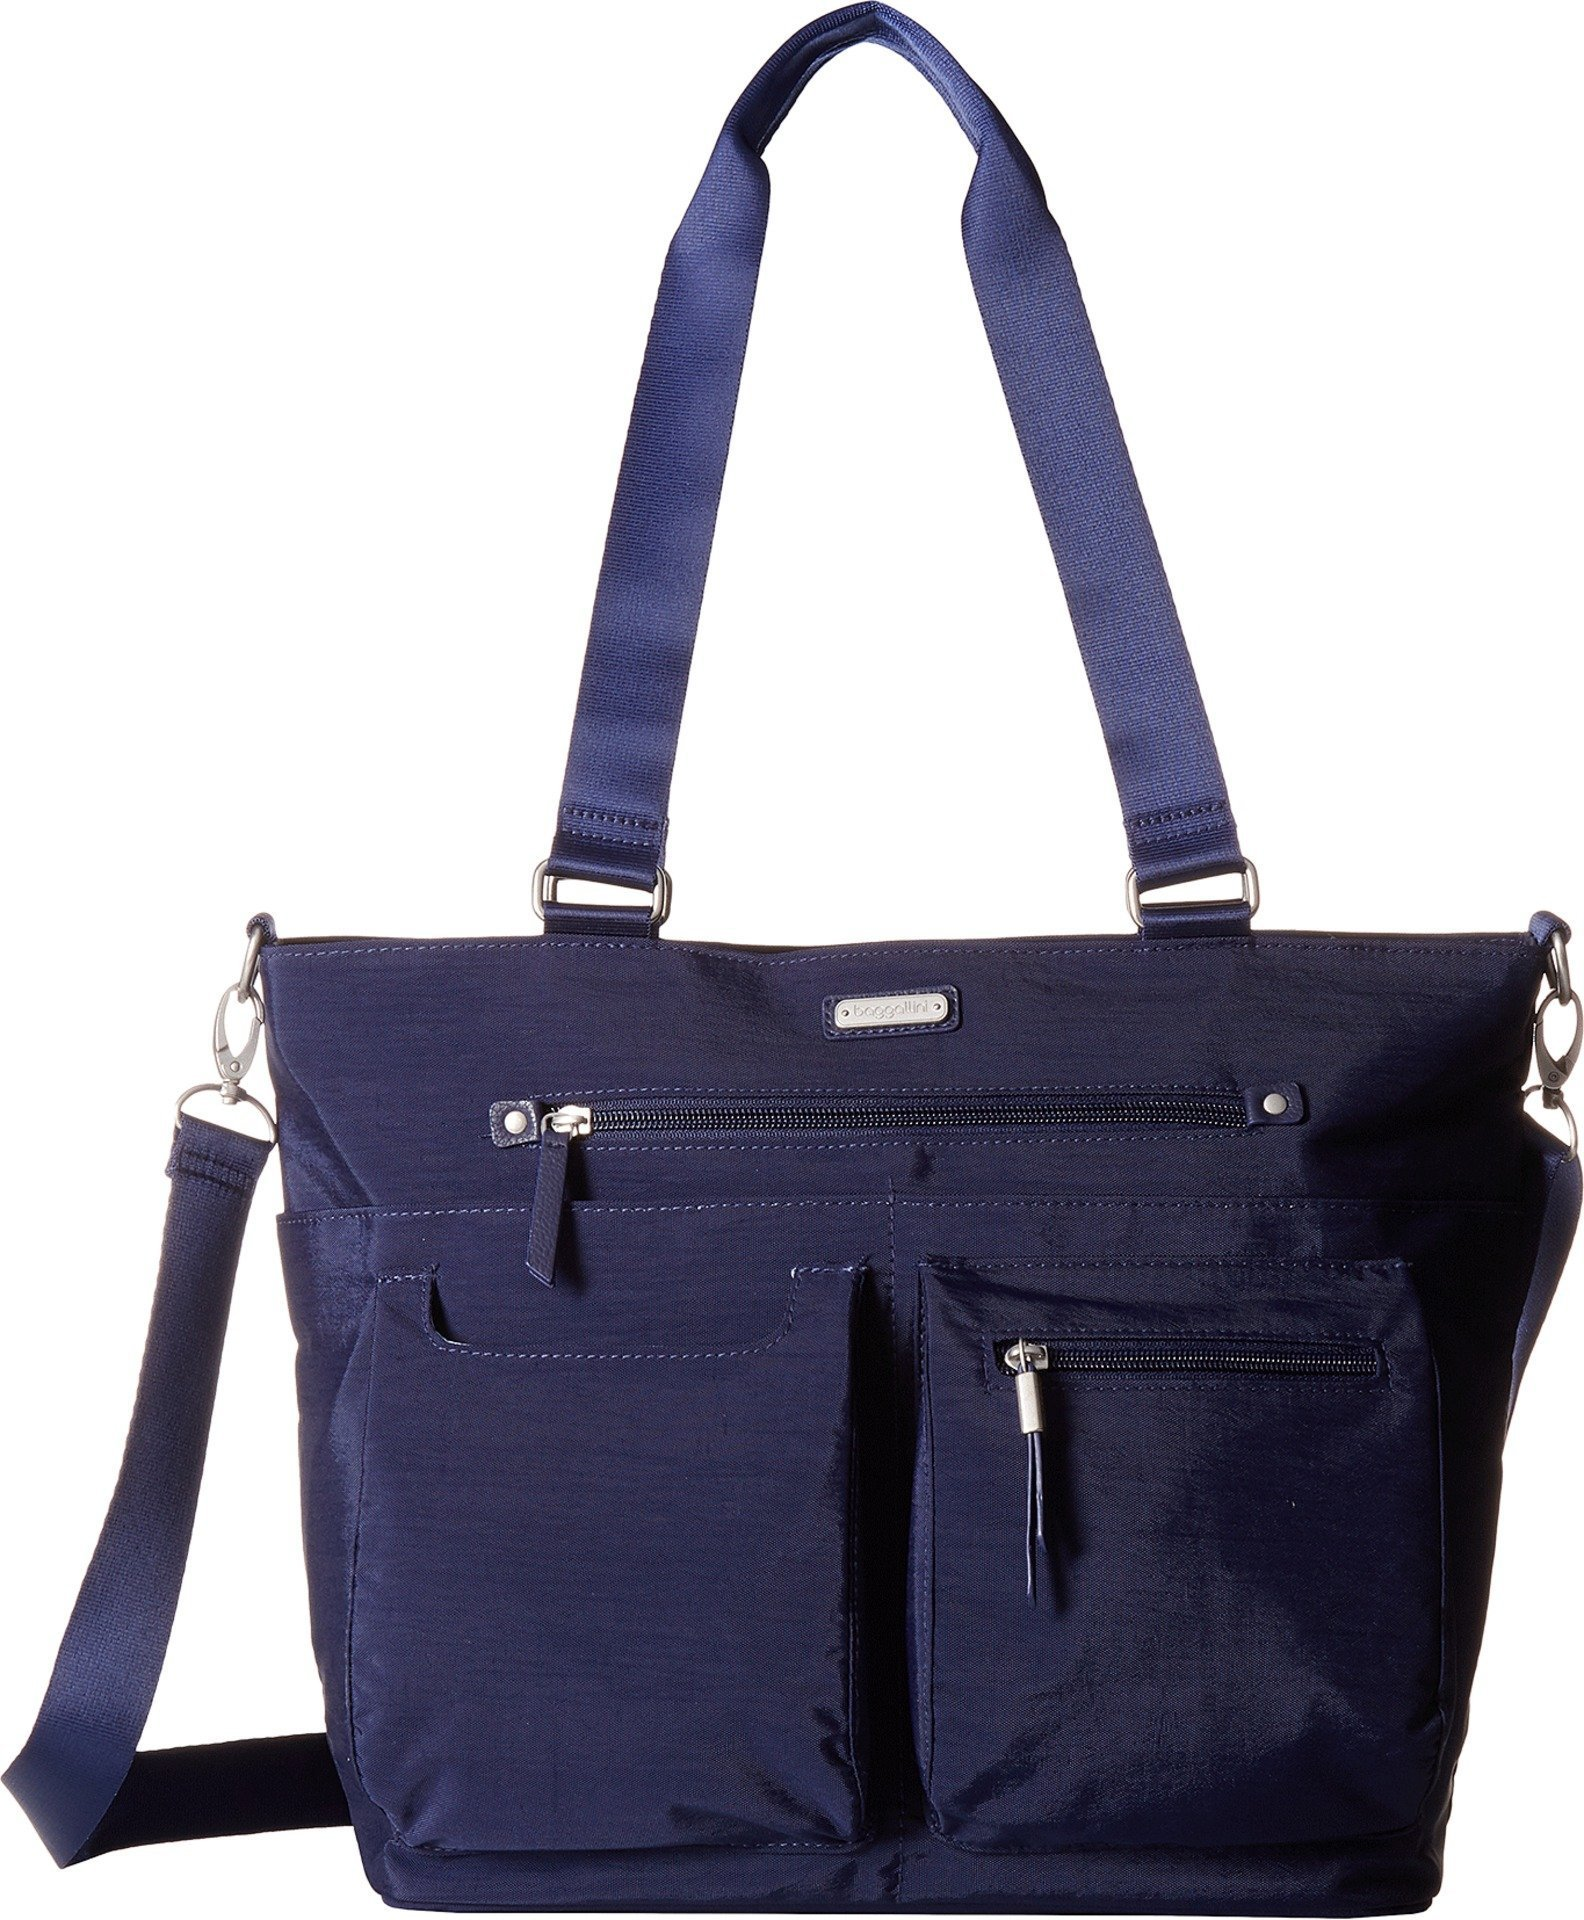 Baggallini Women's New Classic Any Day Tote with RFID Phone Wristlet Navy One Size by Baggallini